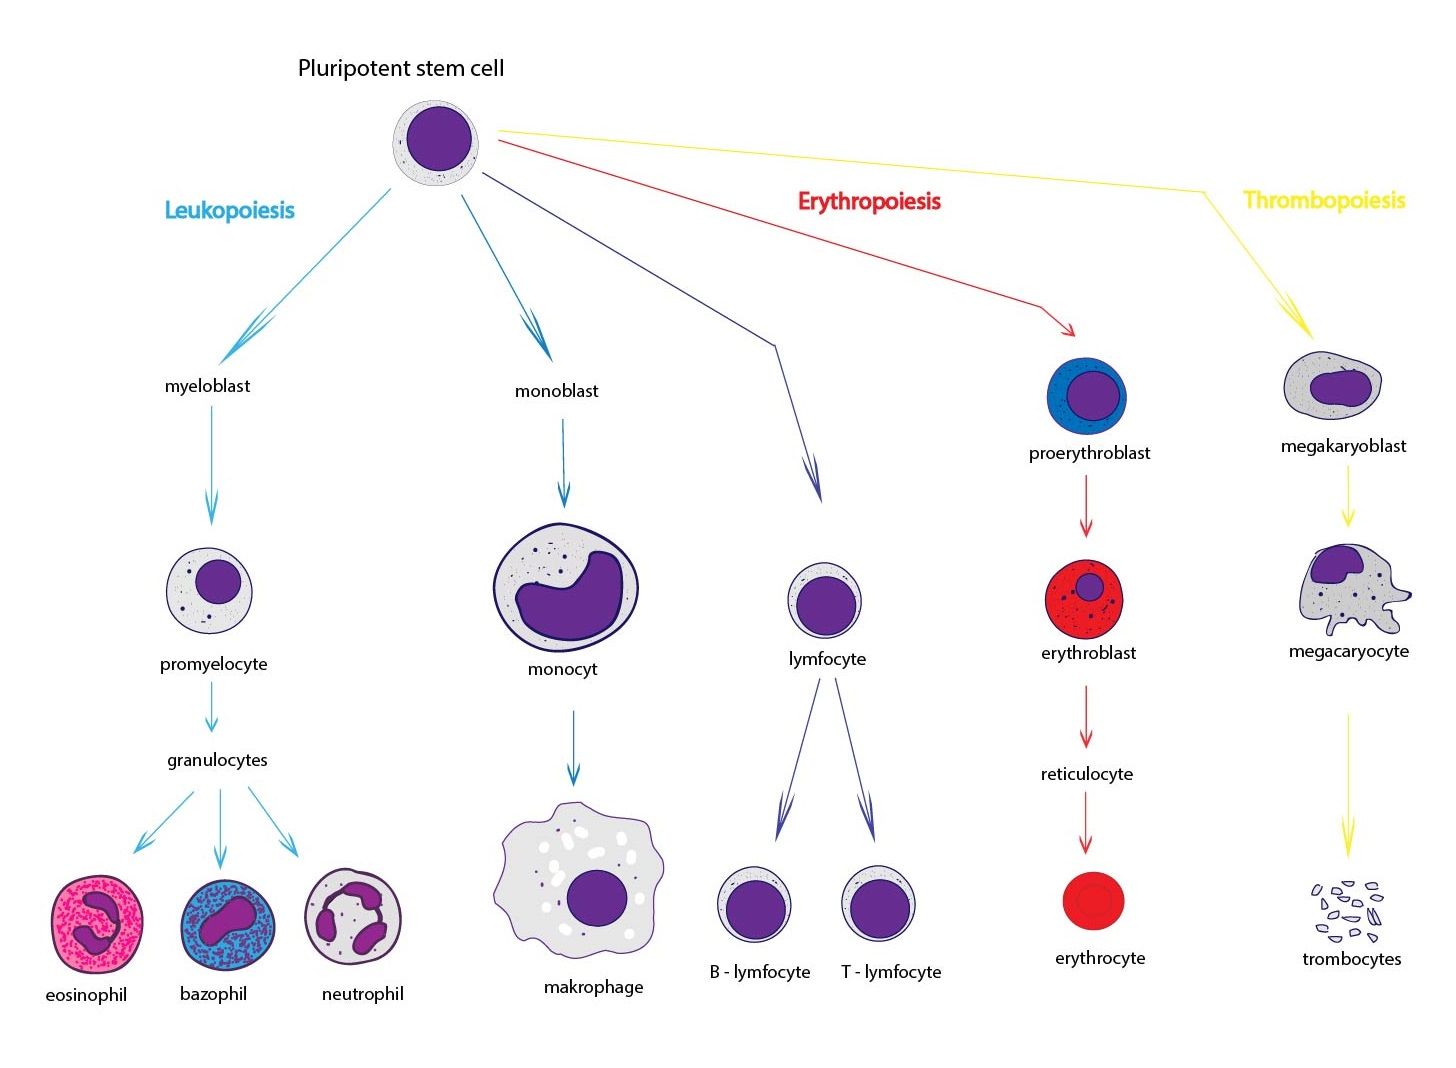 Thrombocytes structure